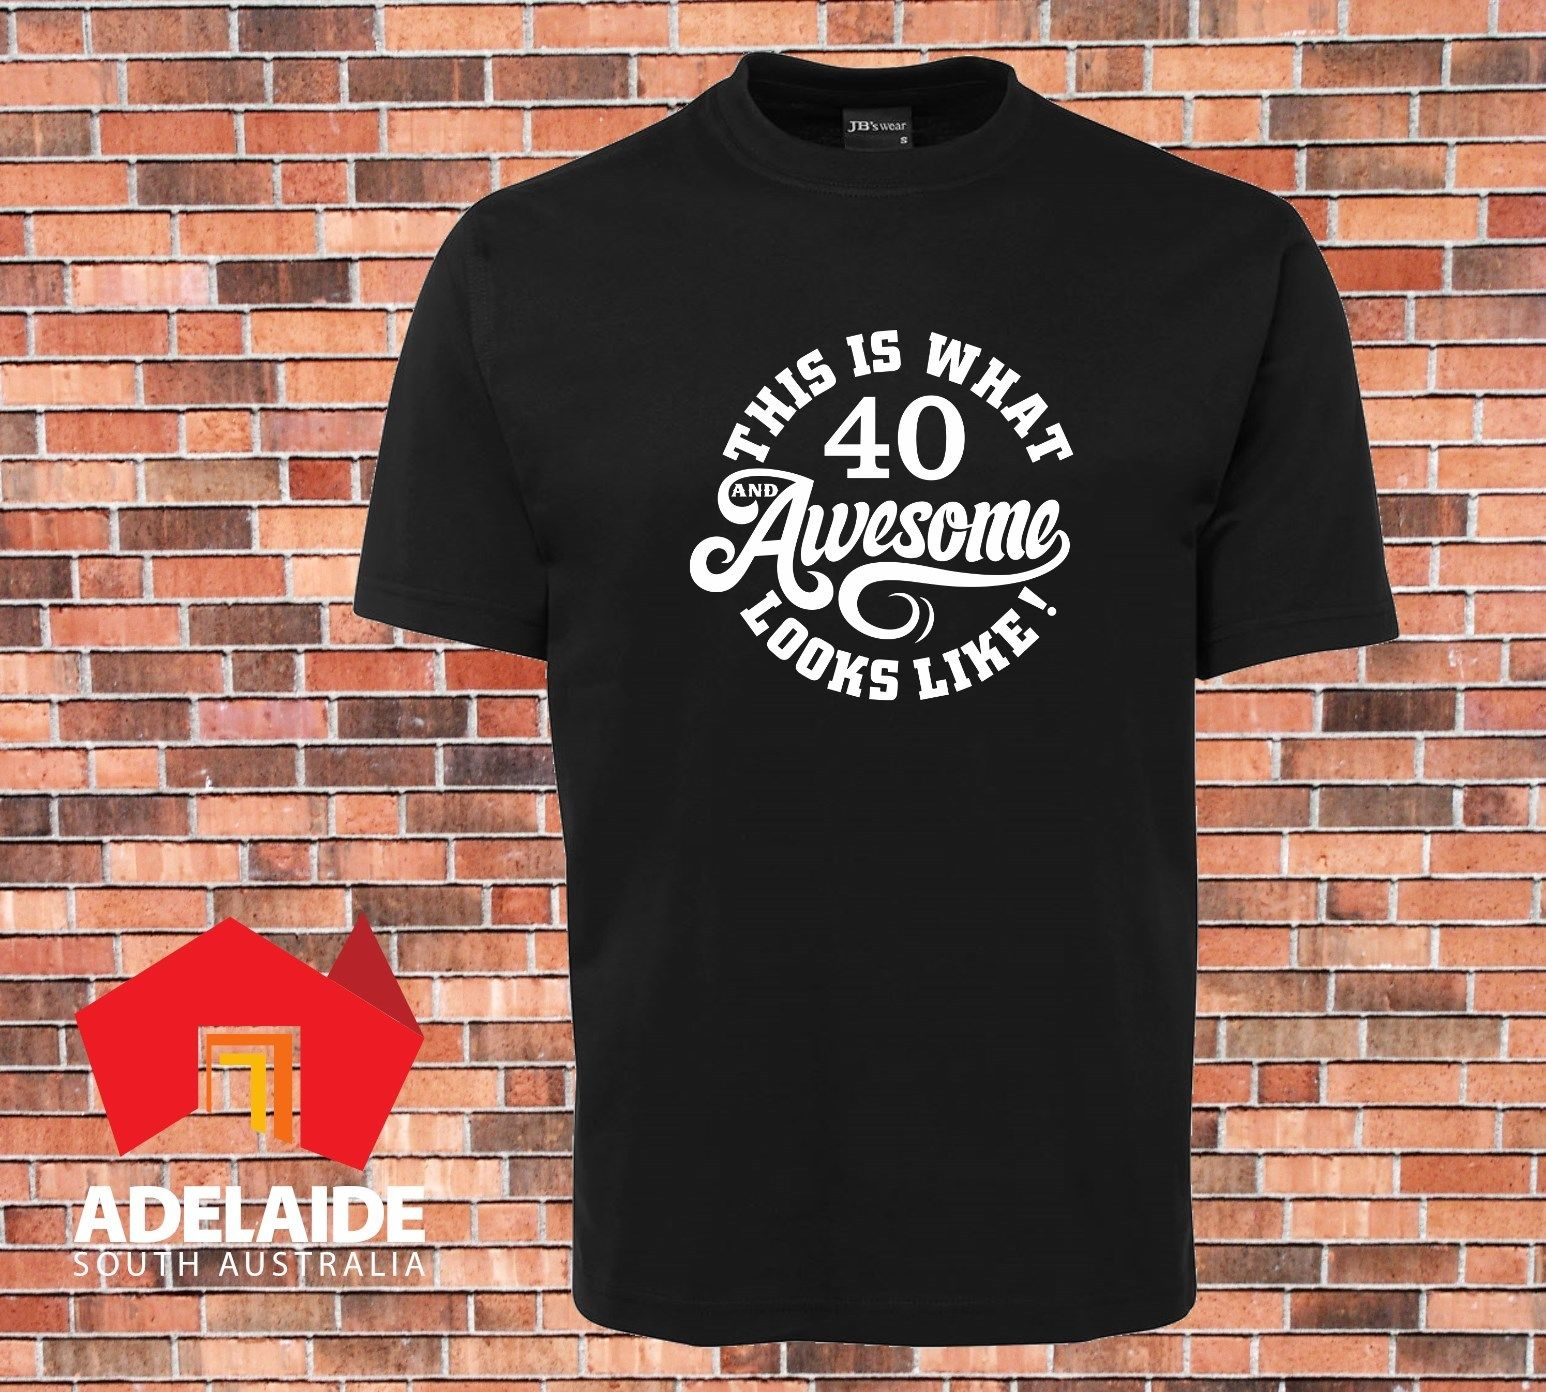 2019 Fashion T shirt This is what 40 and awesome looks